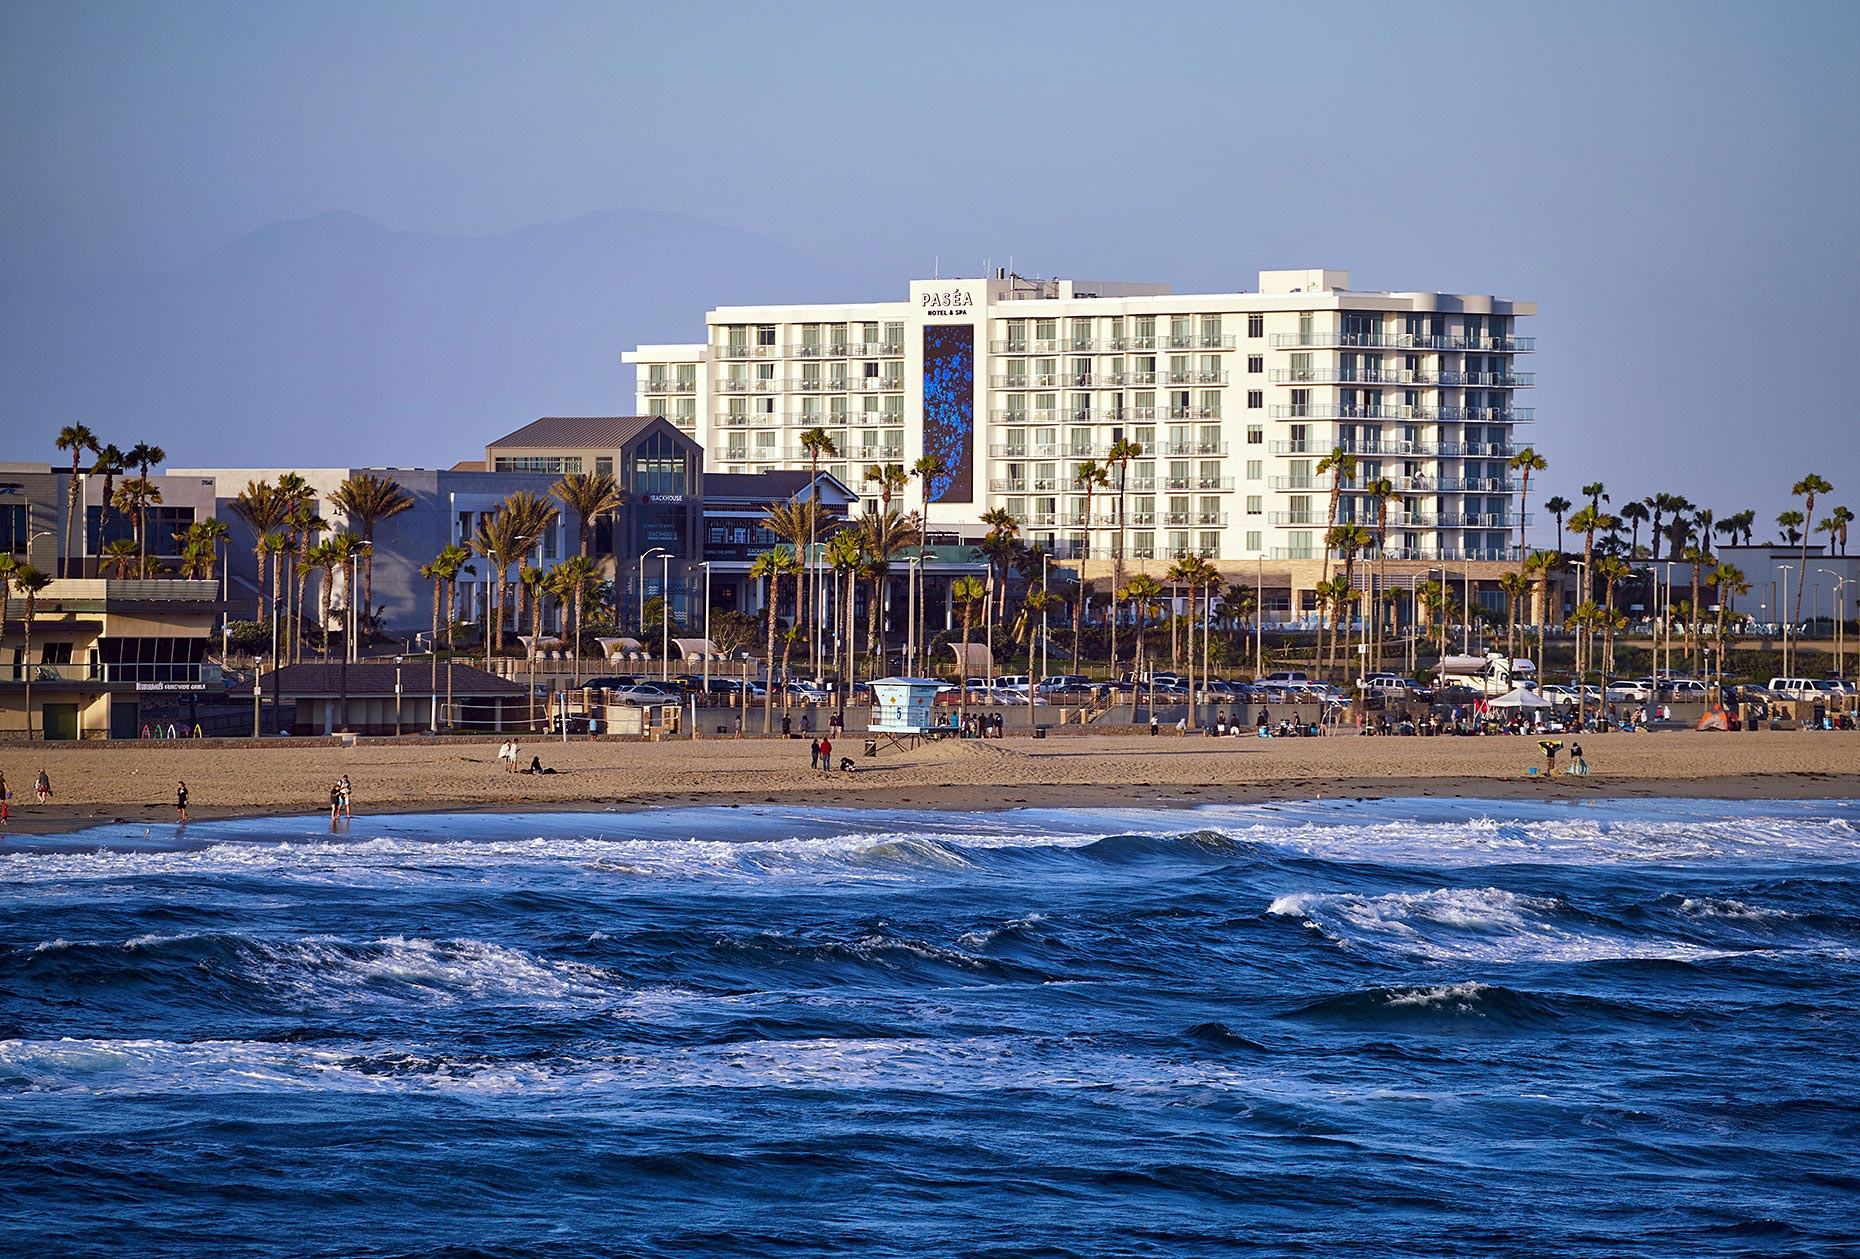 Pasea_Hotel_From_Huntington_Beach_Pier